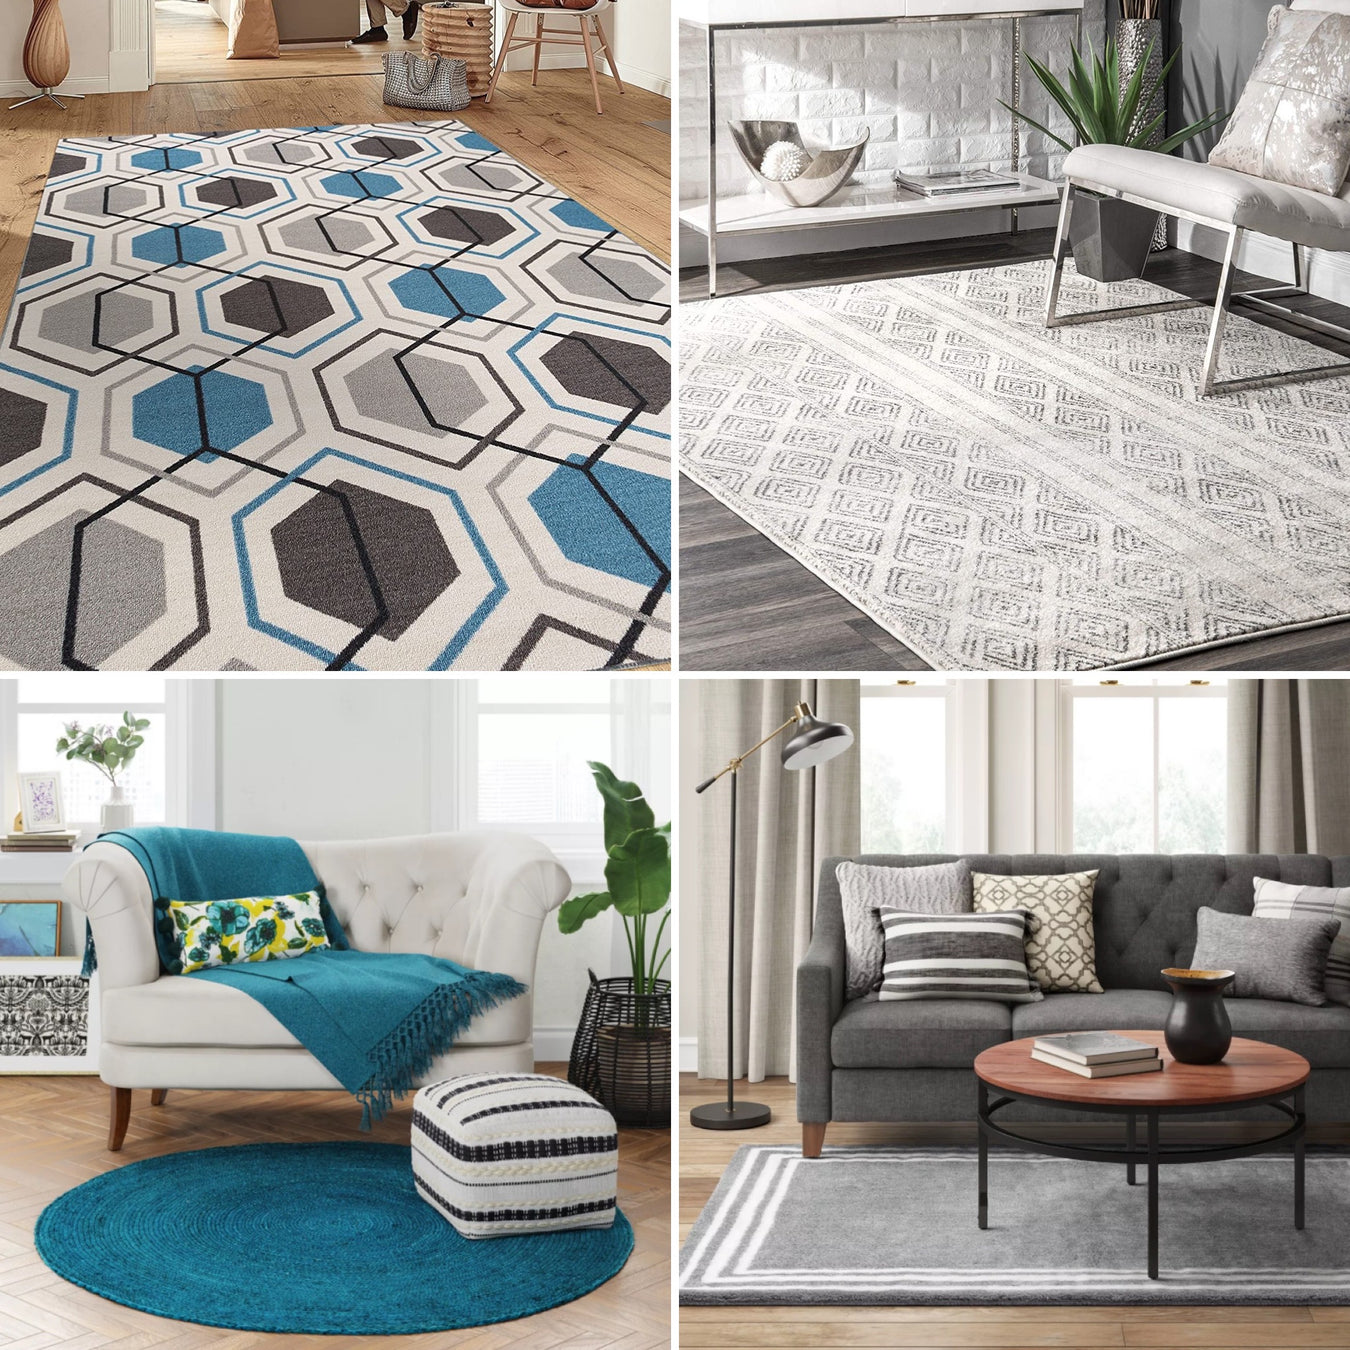 Hot Deal! Designer 5x8 Area Rugs $75 Each - Limited Qty!